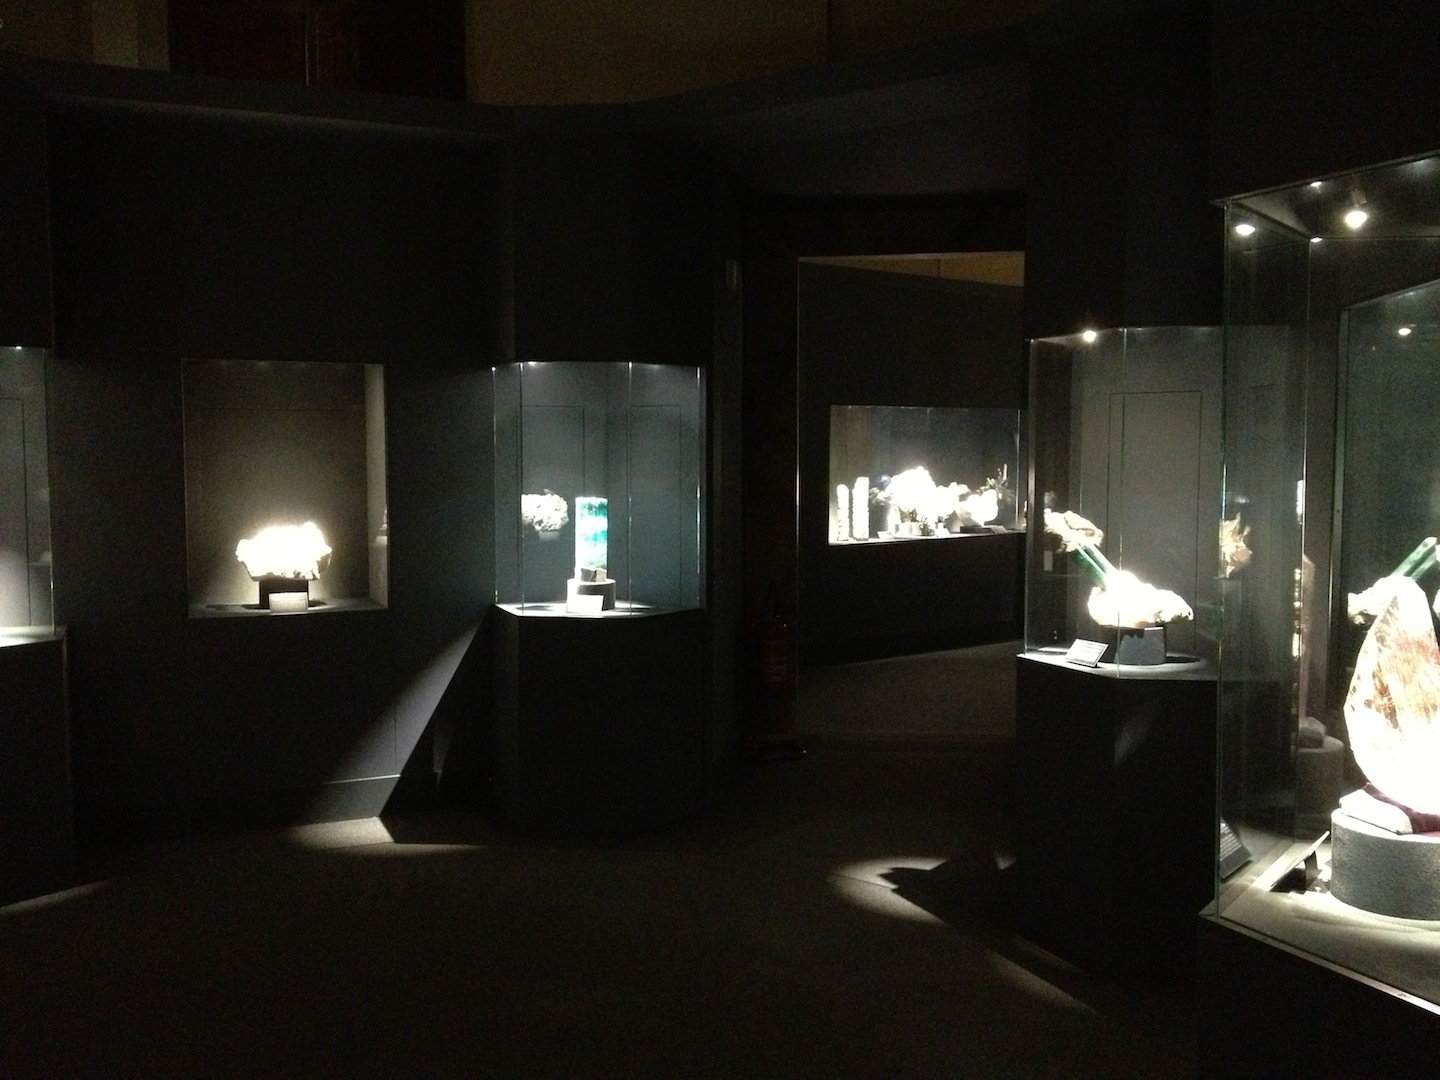 Crystal-Exhibition-La-Specola-Florence-Italy-jessewaugh.com-184.jpg